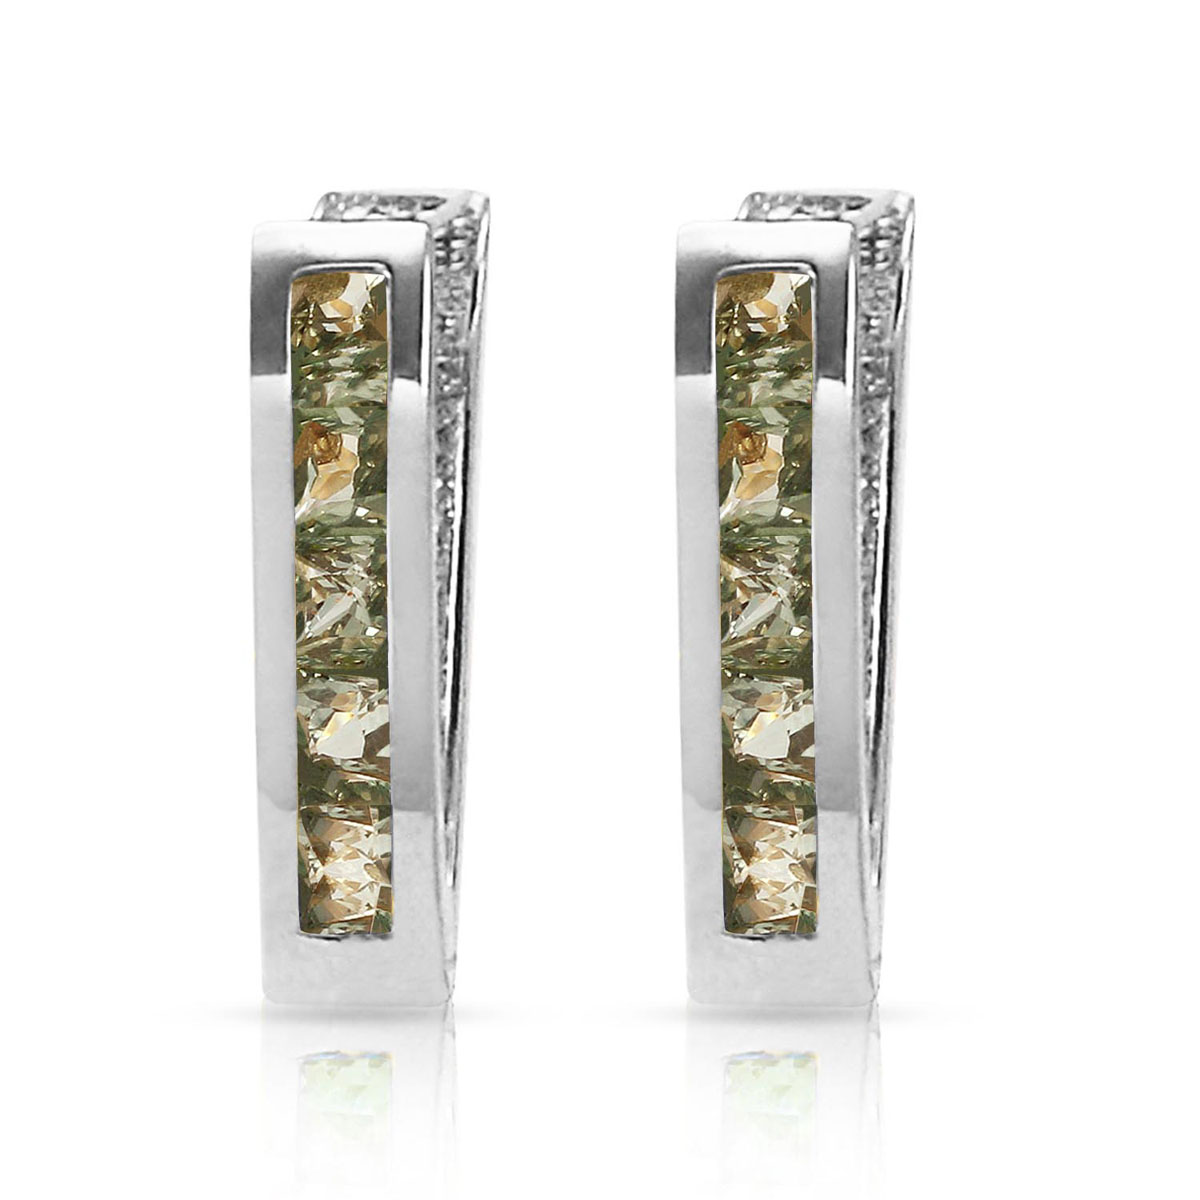 Sapphire Acute Huggie Earrings 1.3 ctw in 9ct White Gold